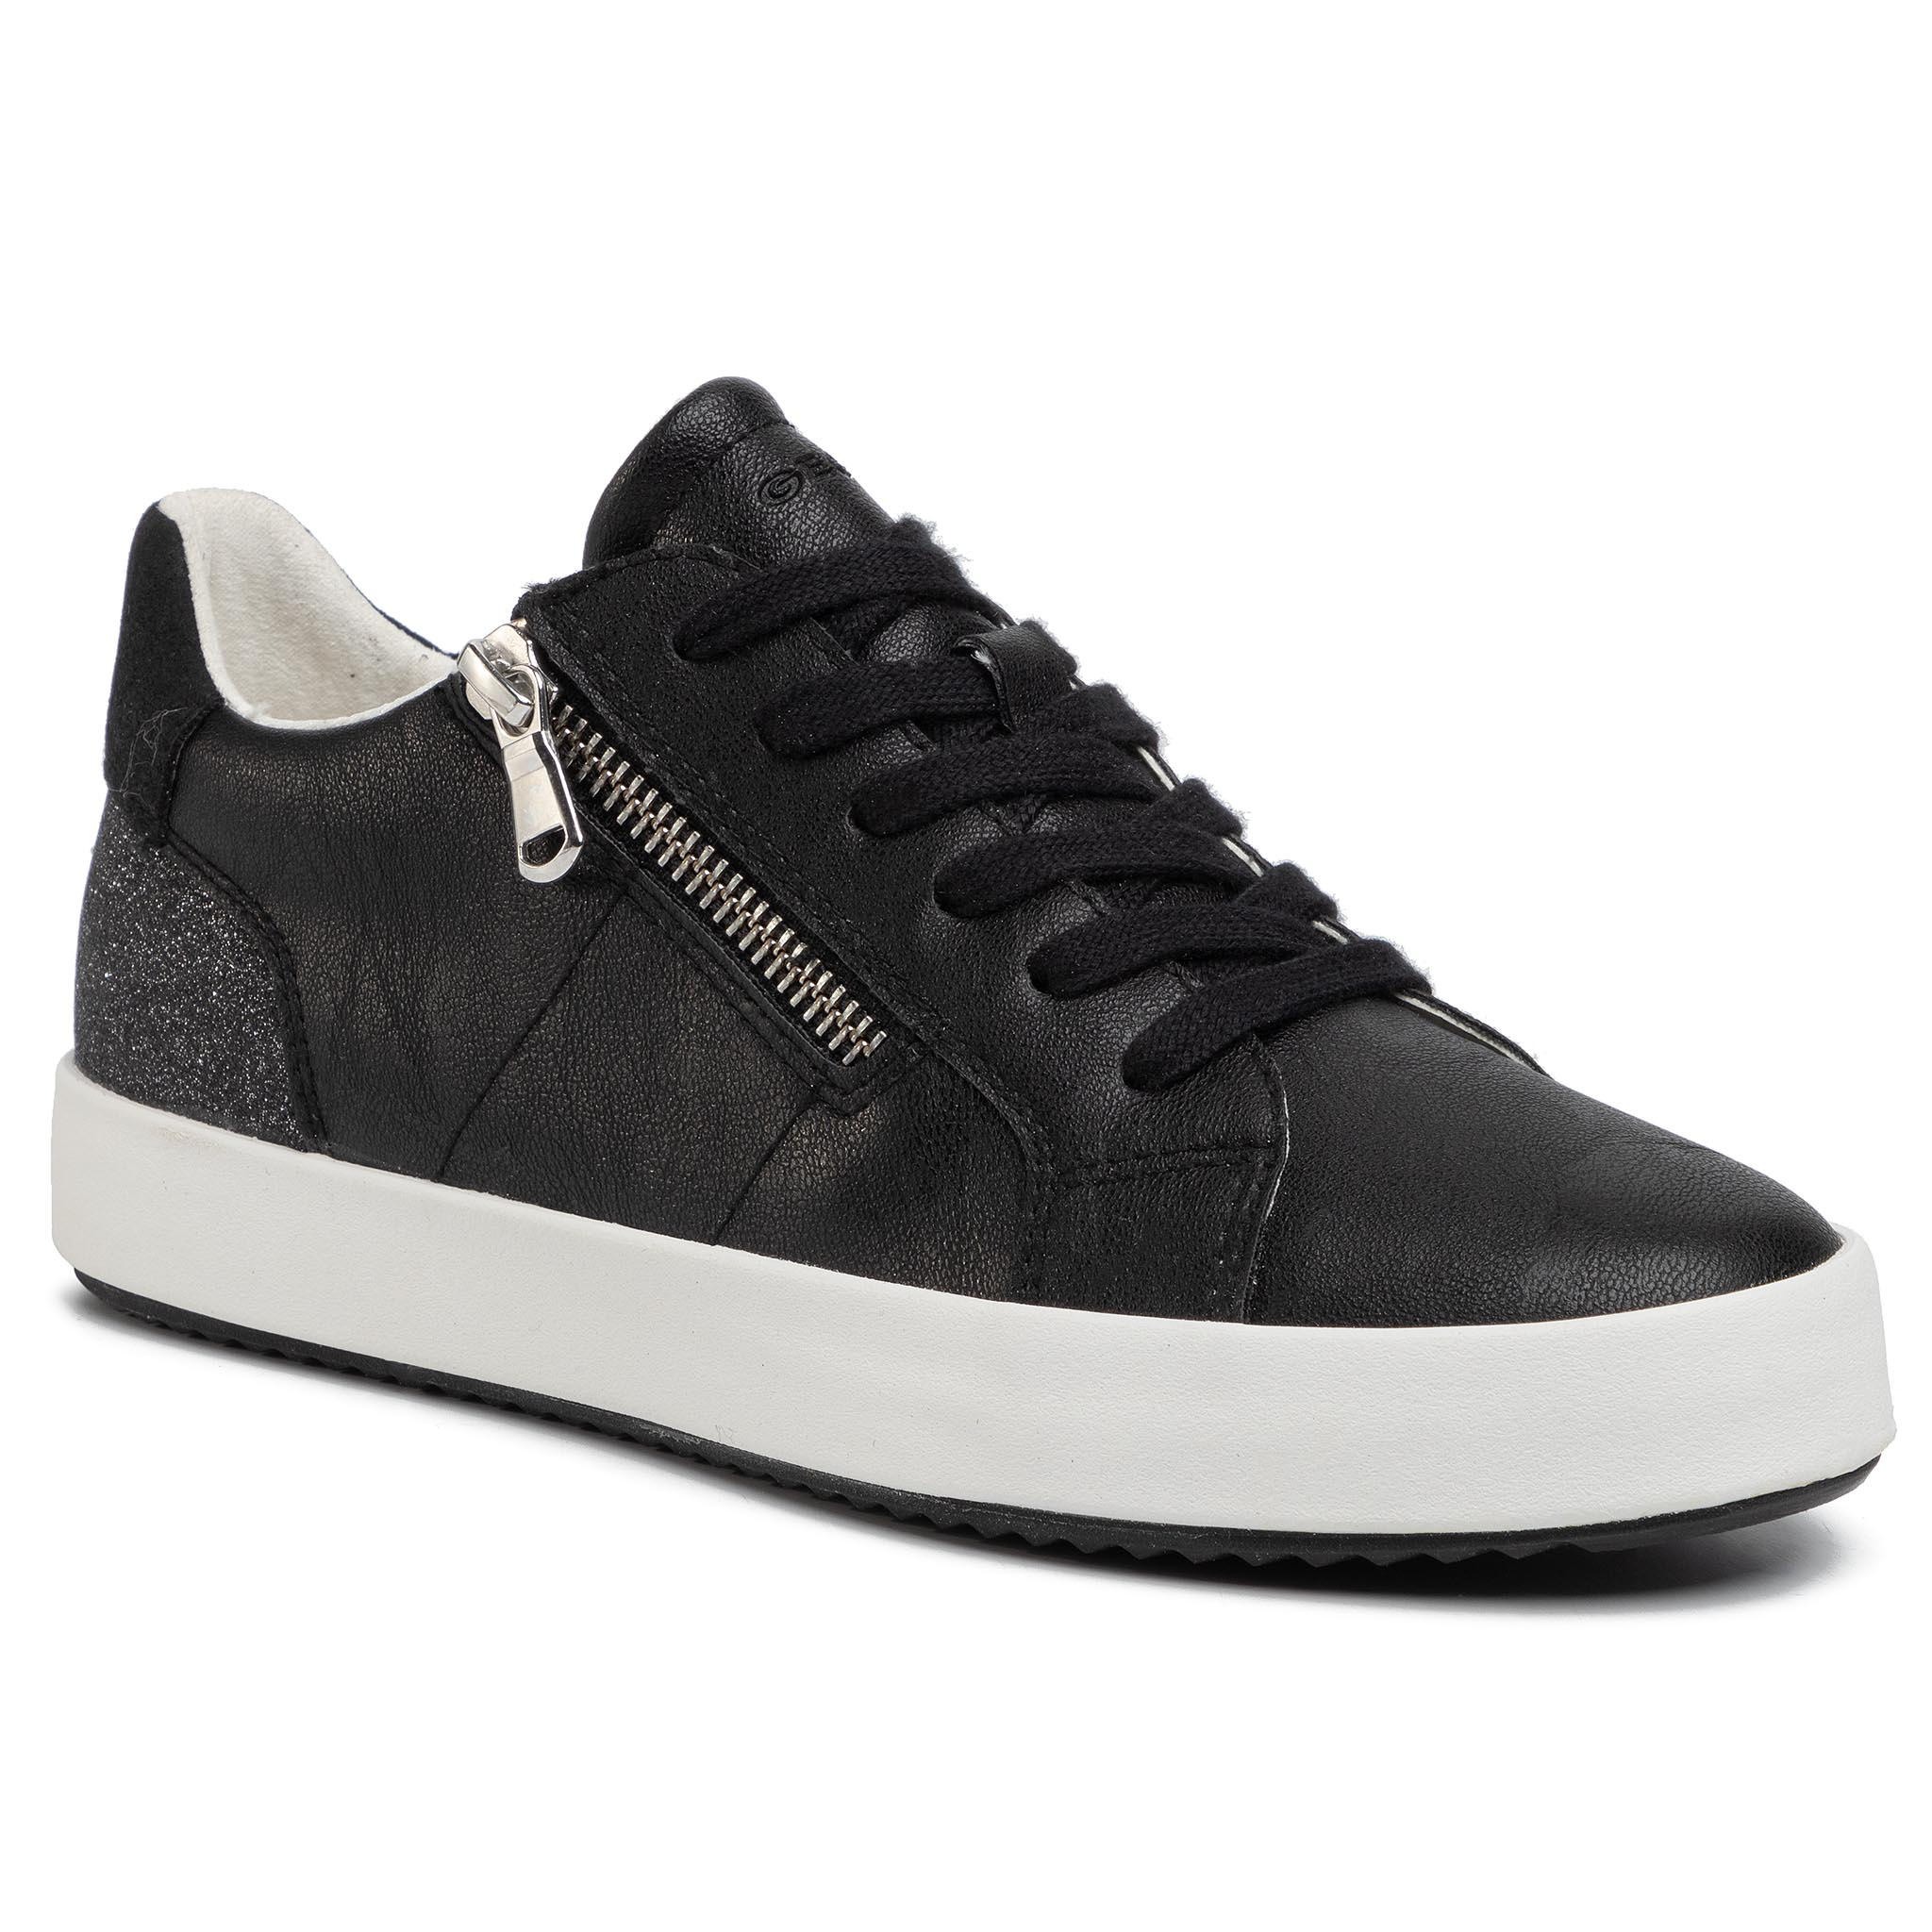 Sneakers GEOX - D Blomiee A D026HA 0PVEW C9270 Black/Anthracite